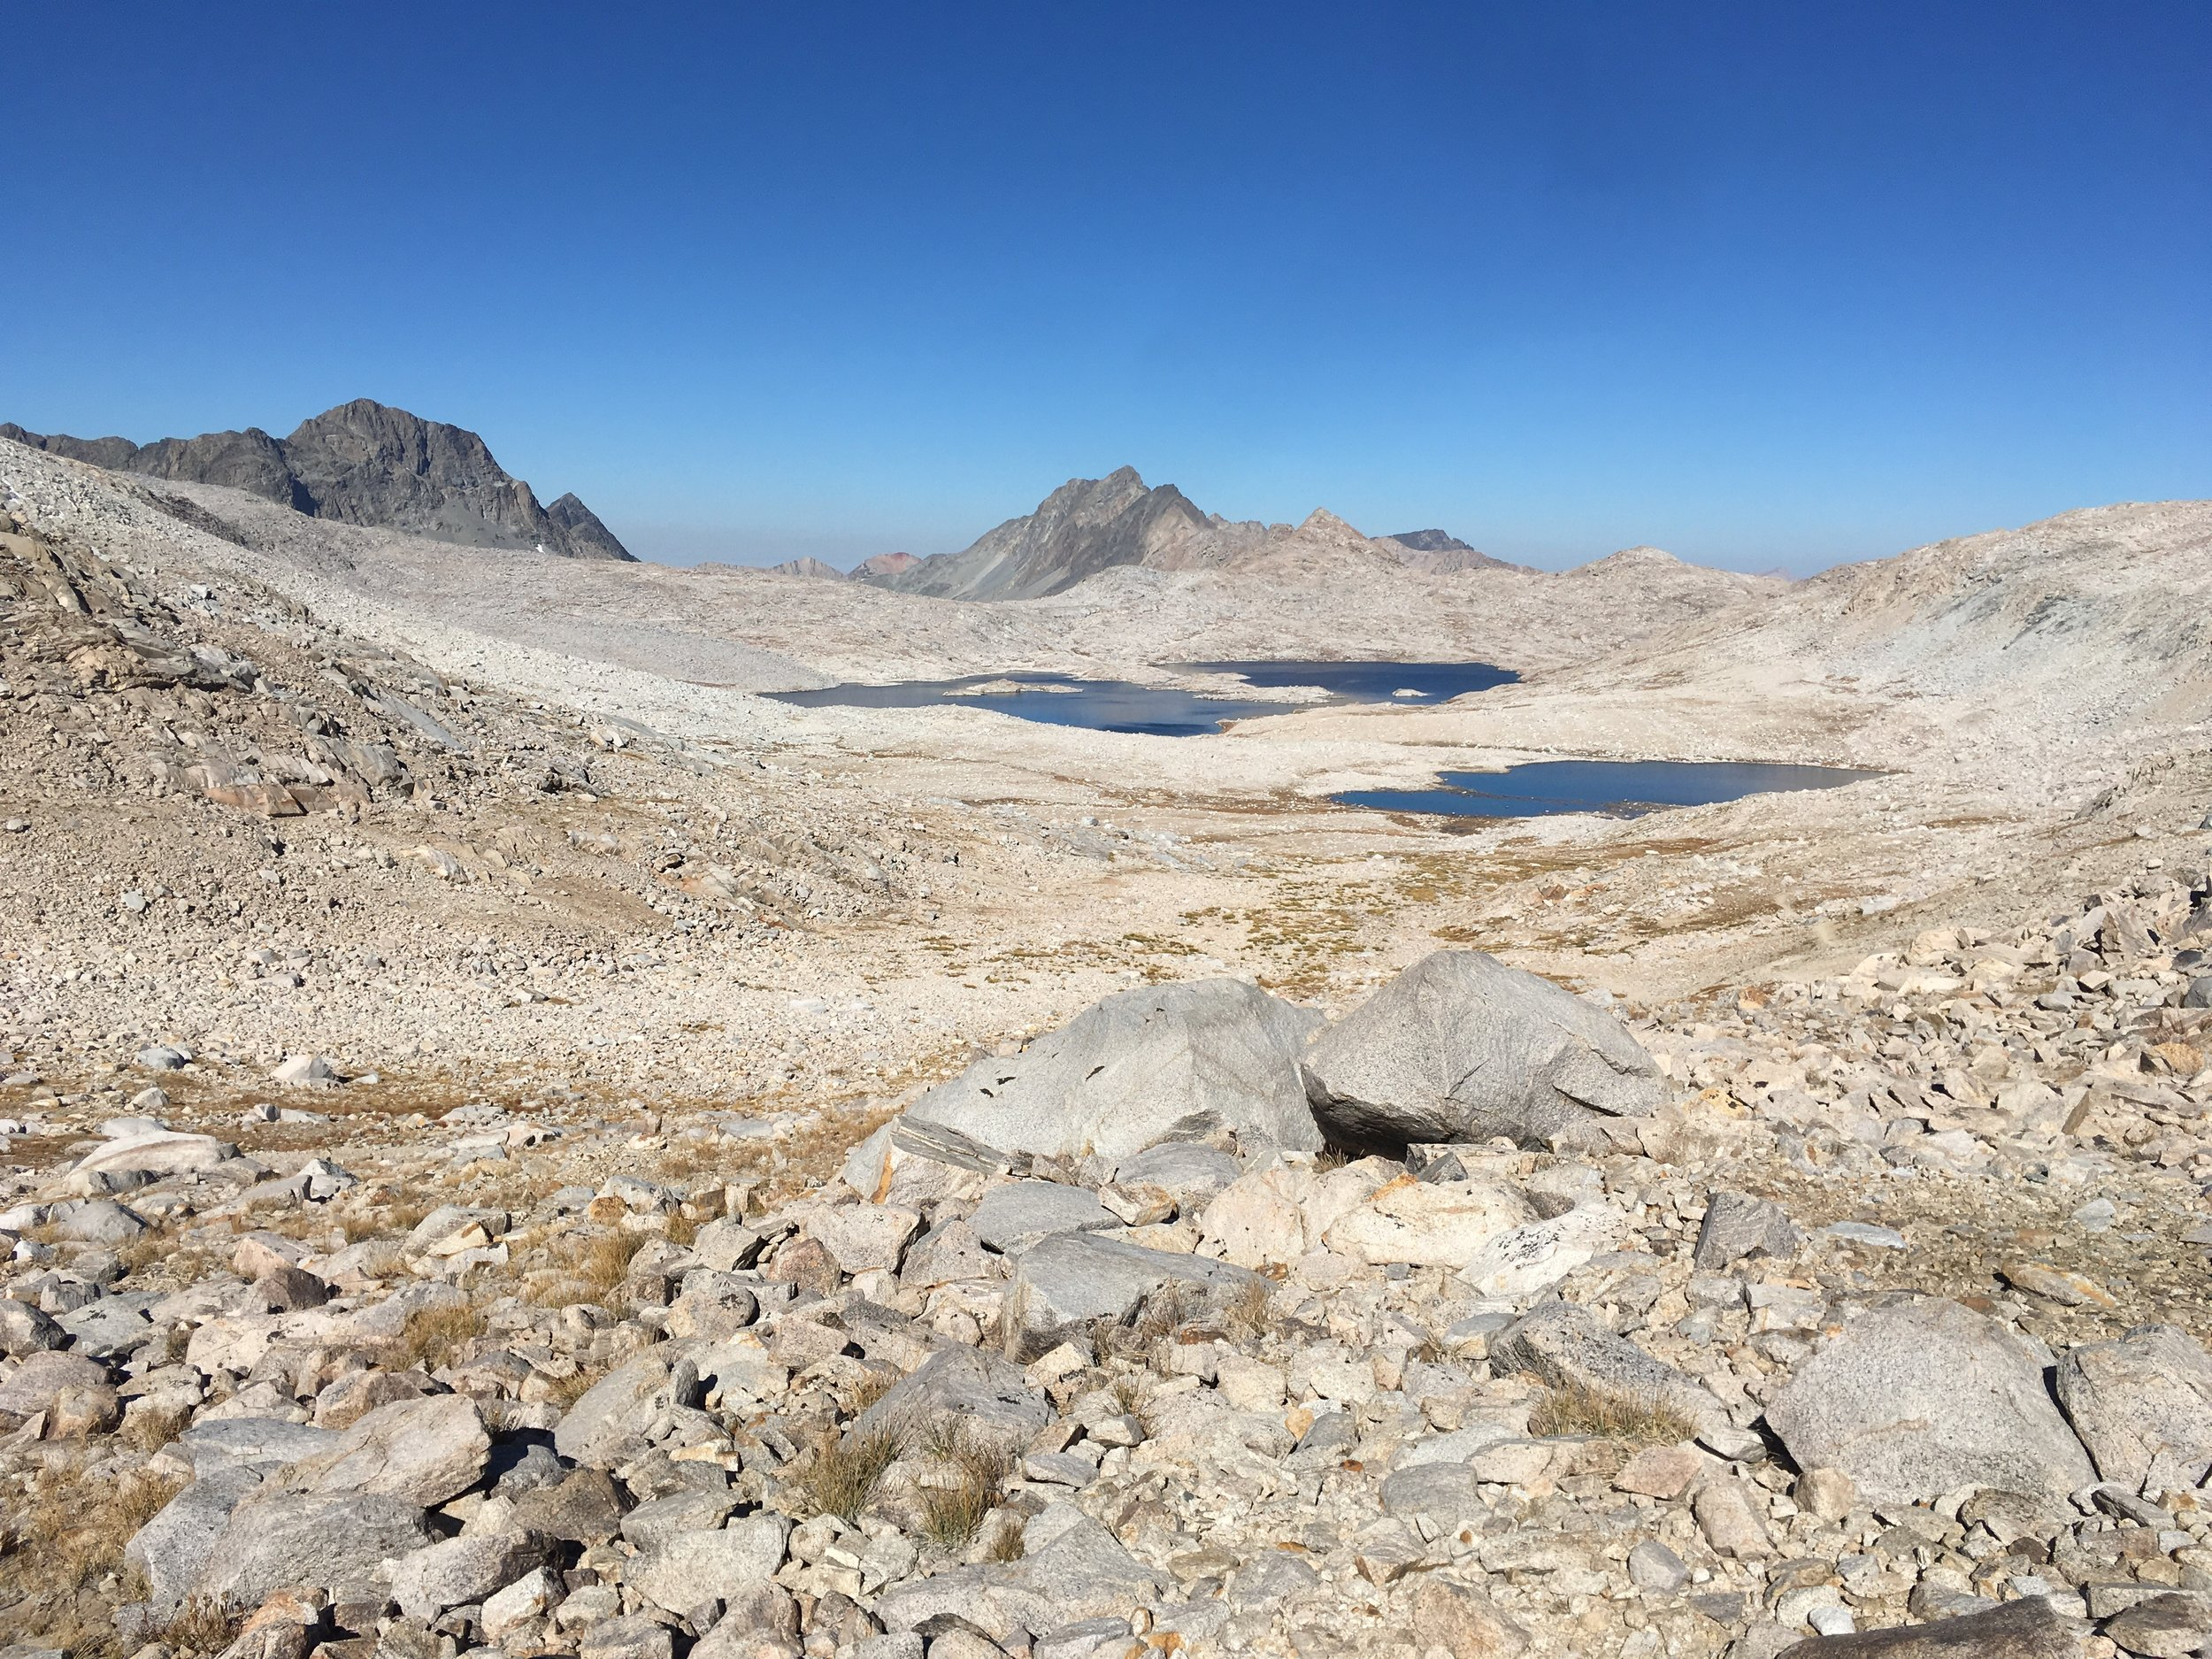 Mt. Davis and Wanda Lake (background) from Muir Pass.